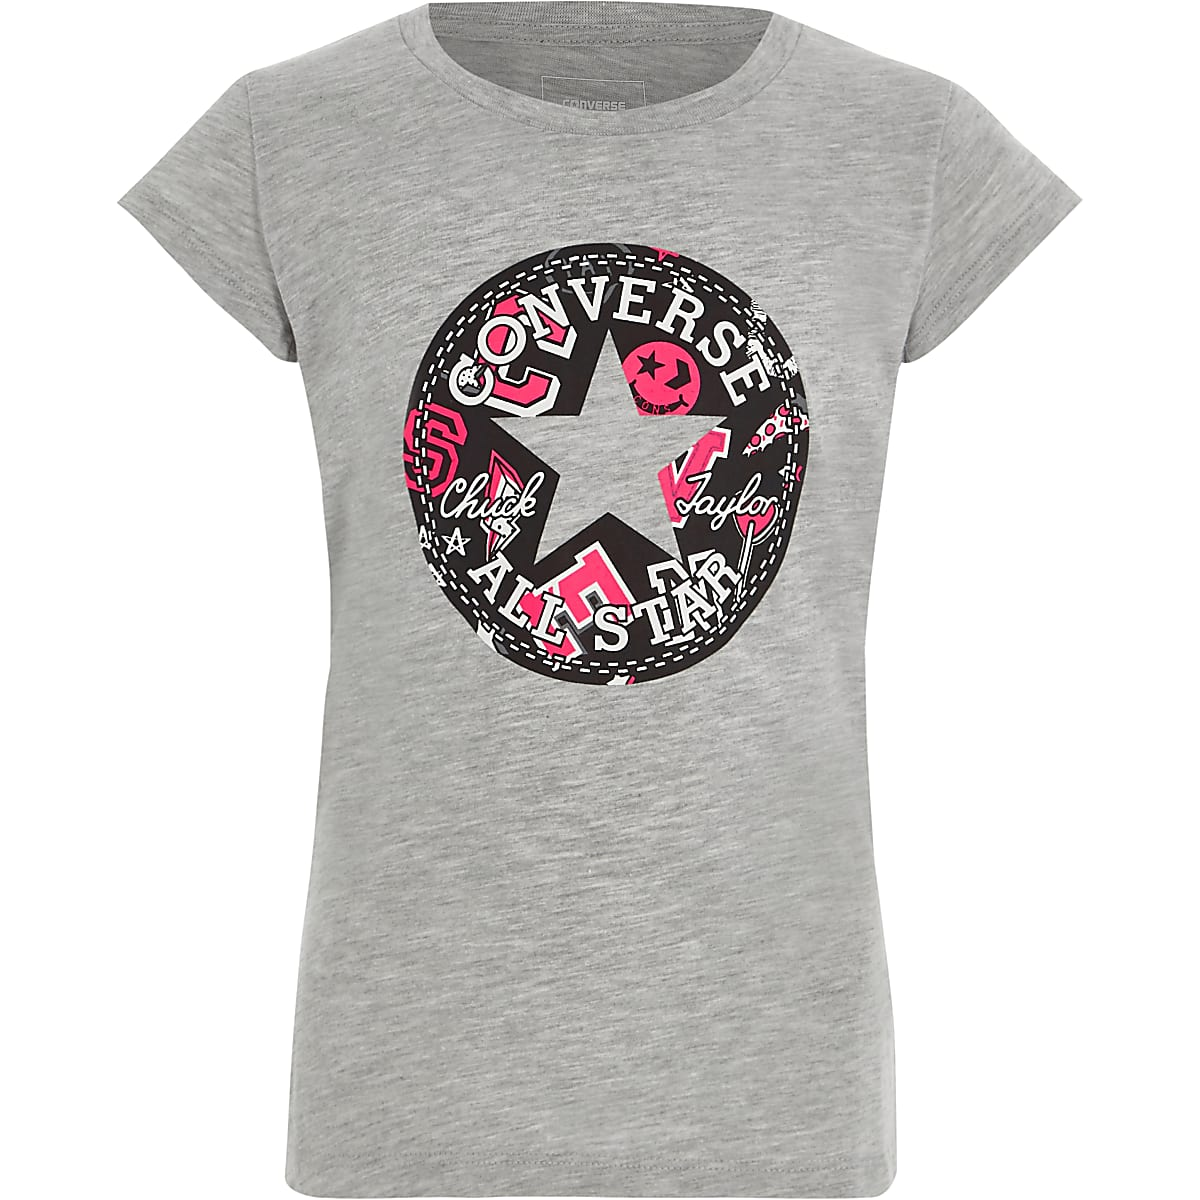 7ae9815d2dc6 Girls Converse grey  All Star  print T-shirt - T-Shirts - Tops - girls